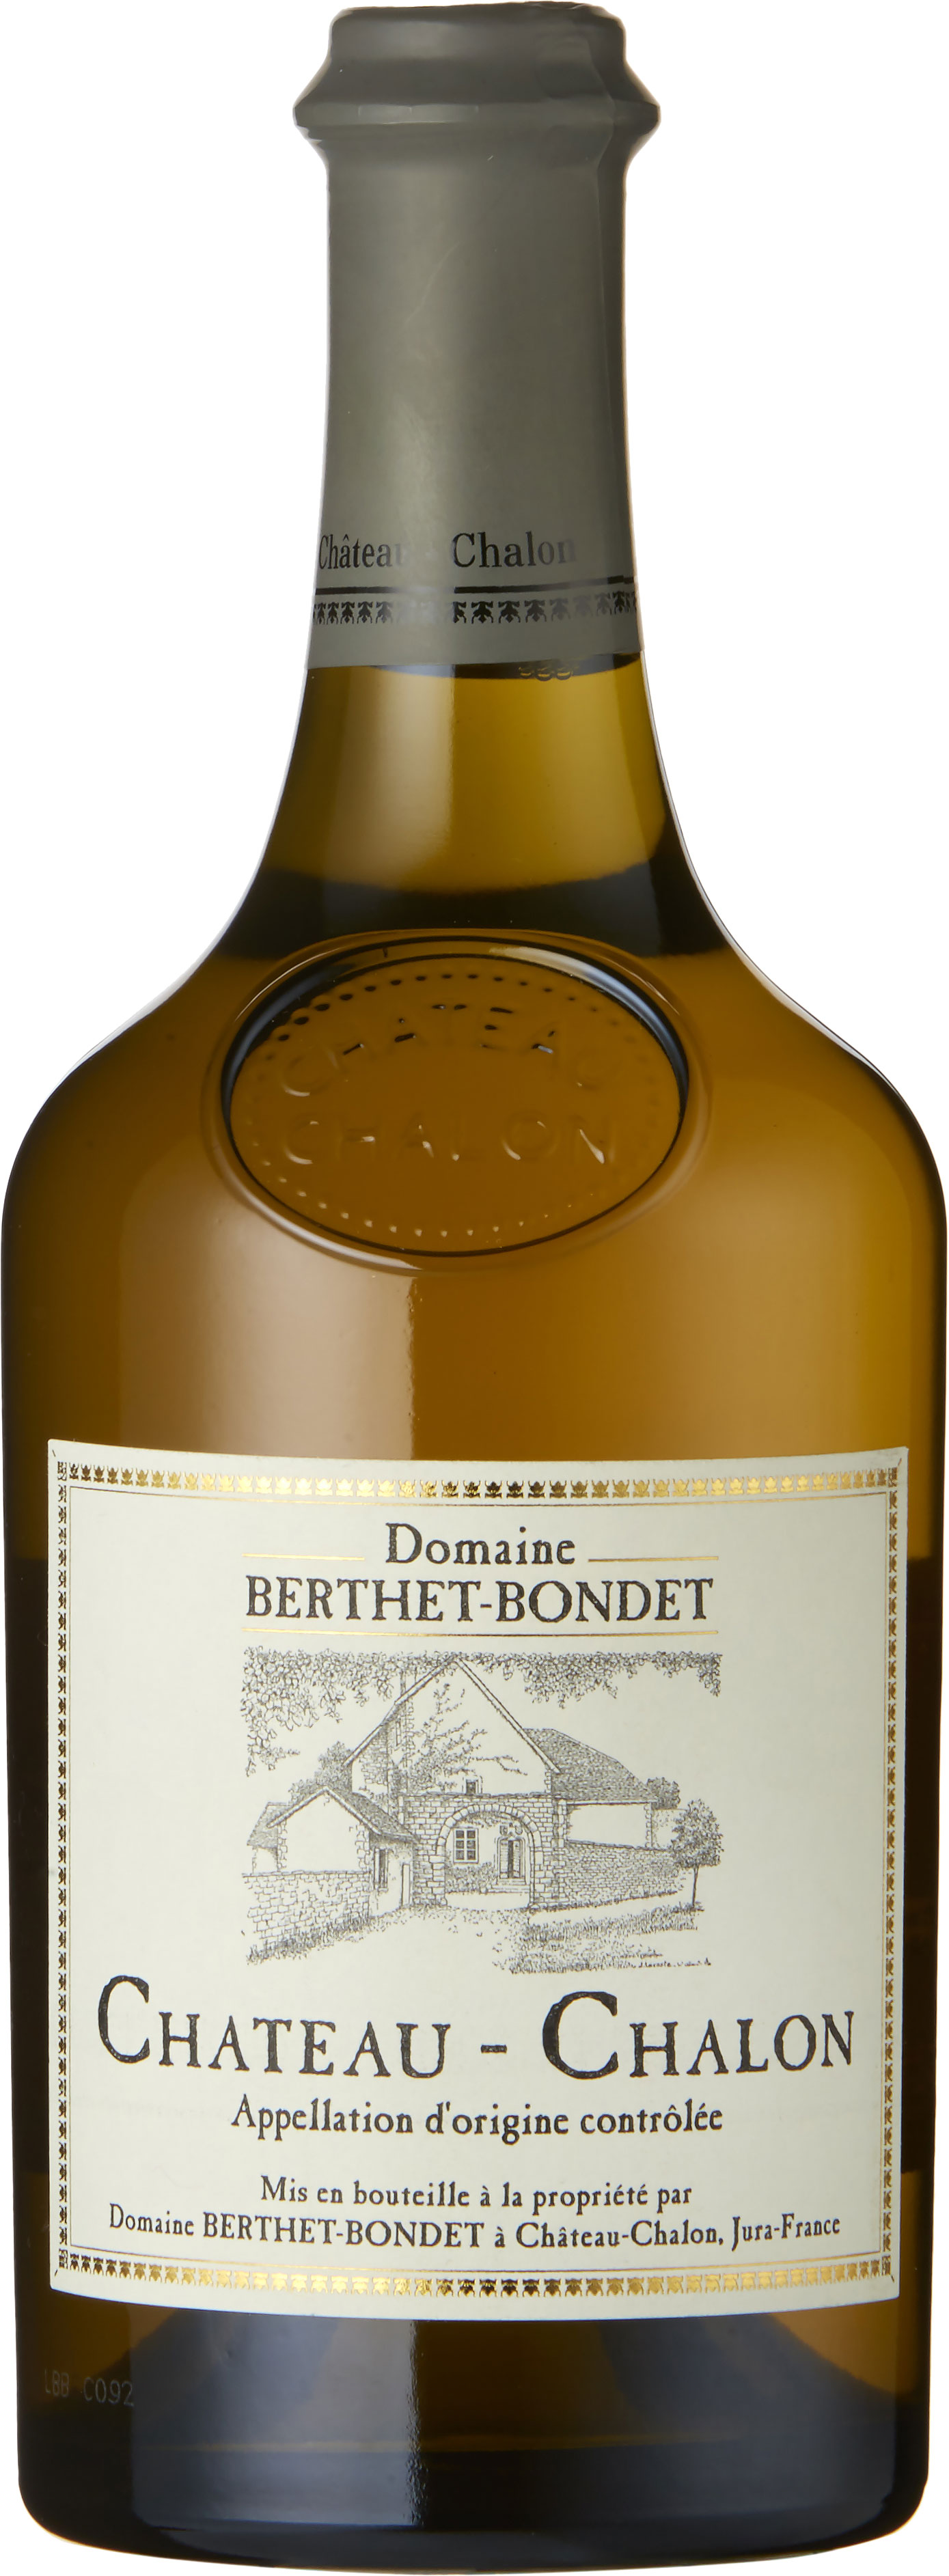 Domaine Berthet-Bondet - Chateau Chalon 2011 6x 620ml Bottles